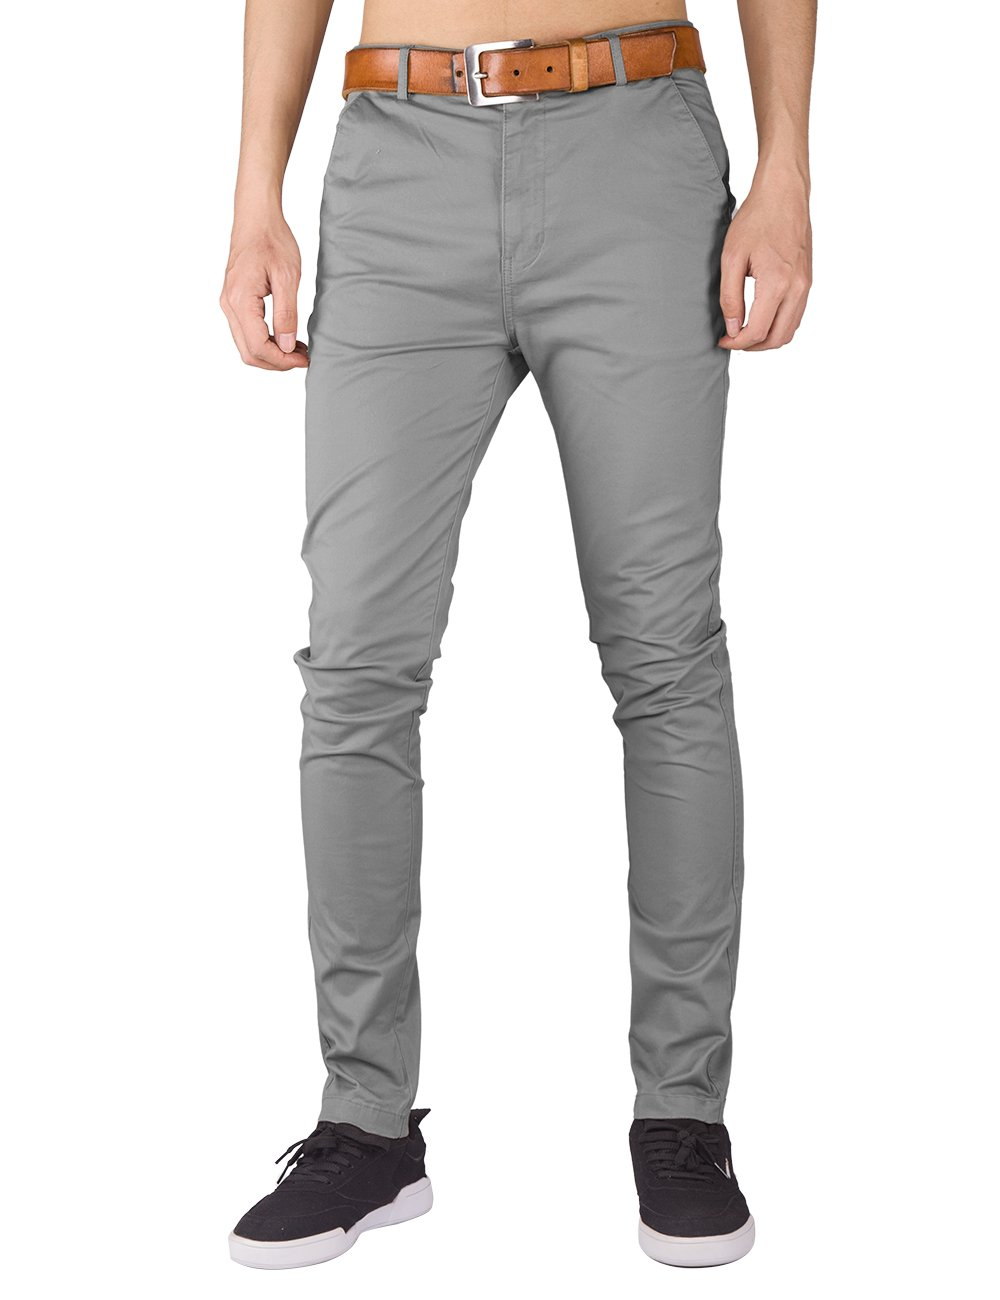 ITALY MORN Mens Flat Front Chino Pants Casual Khakis Slim Fit (XL, Light Grey)